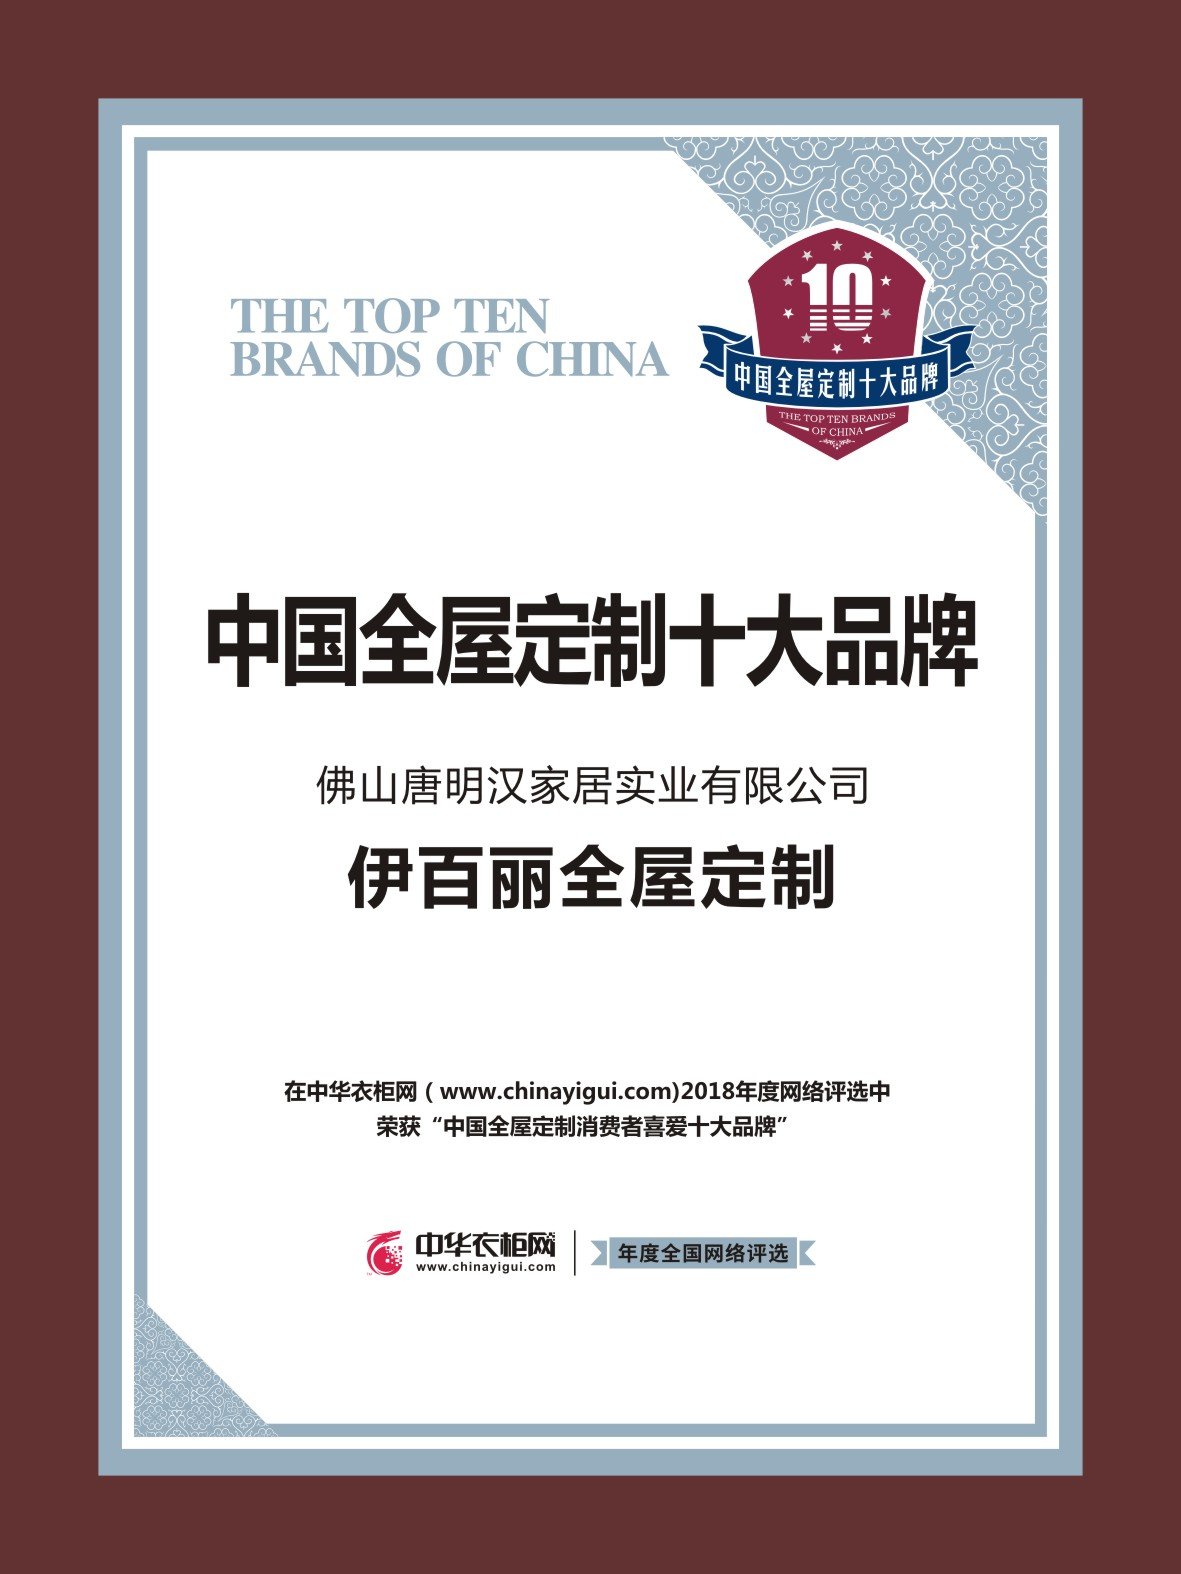 Top ten brands of whole house customization in China